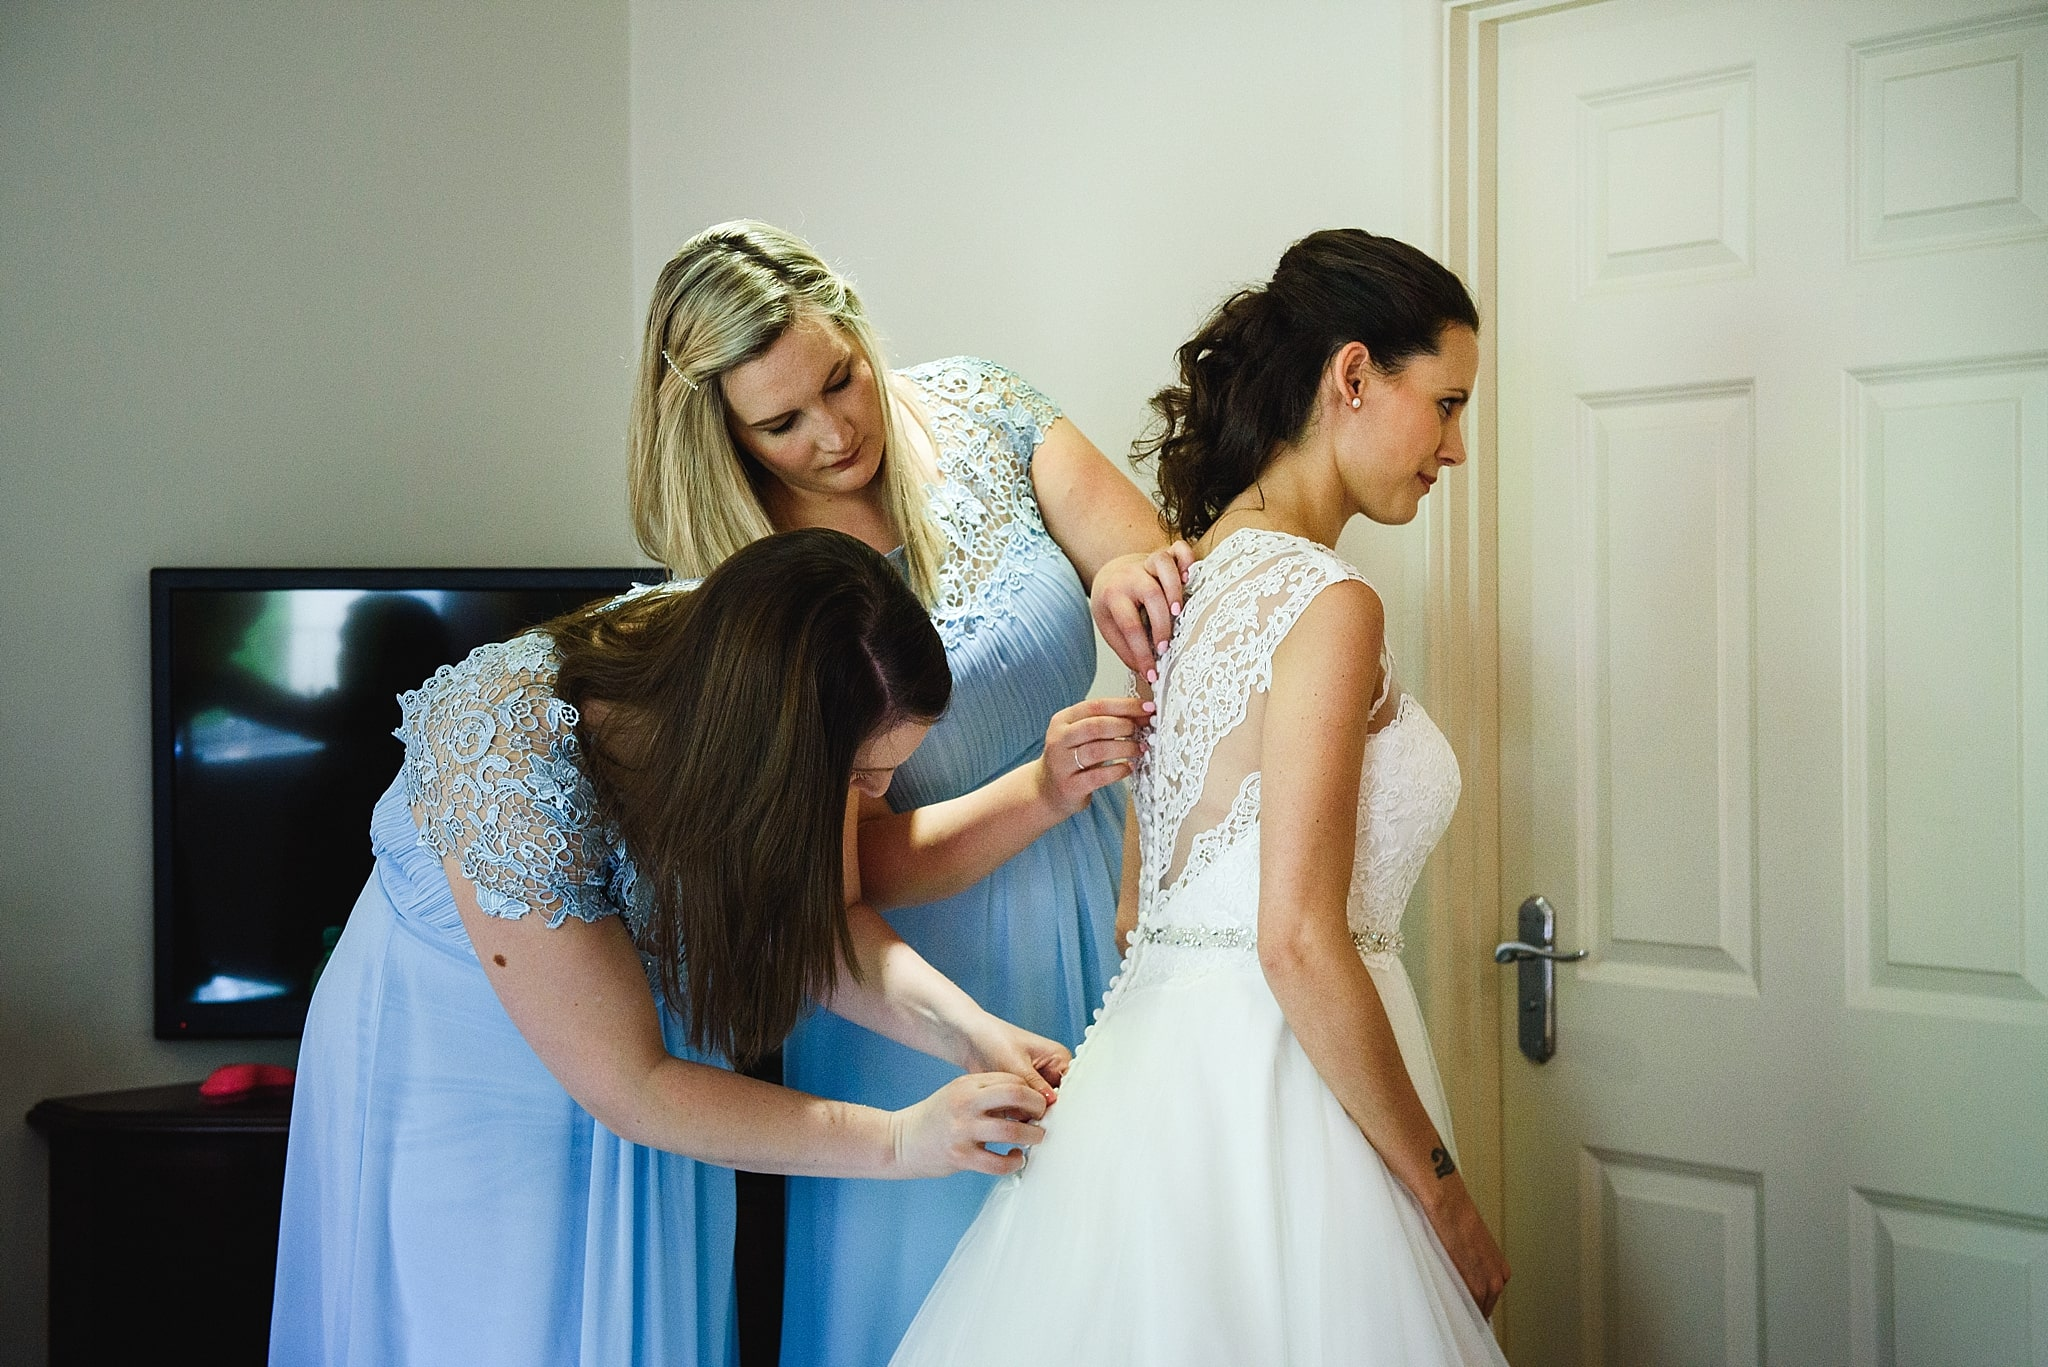 Bridesmaids help Bride put on her wedding dress